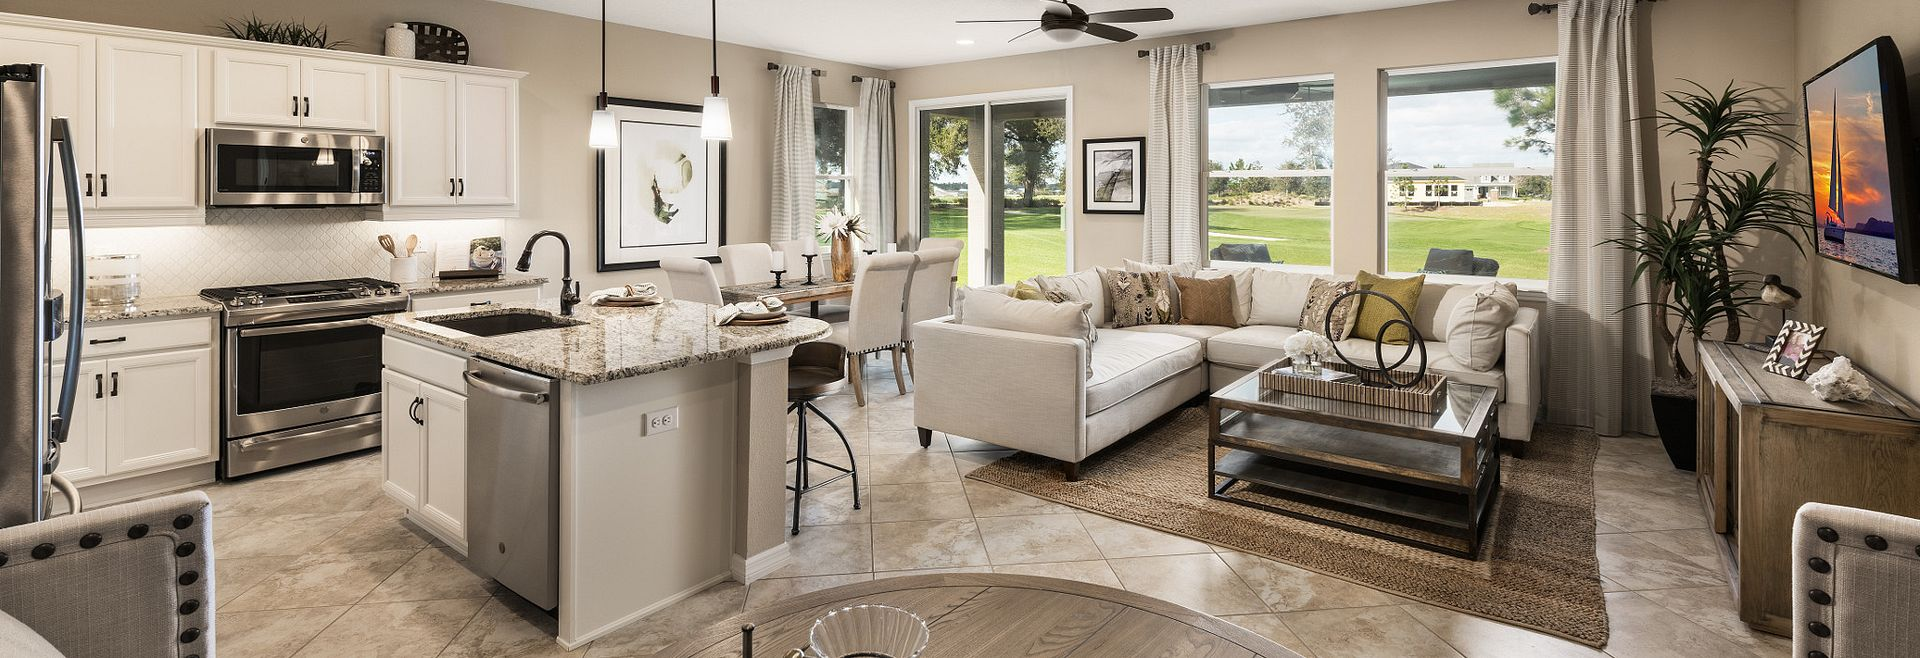 Trilogy at Ocala Preserve Aria Model Home